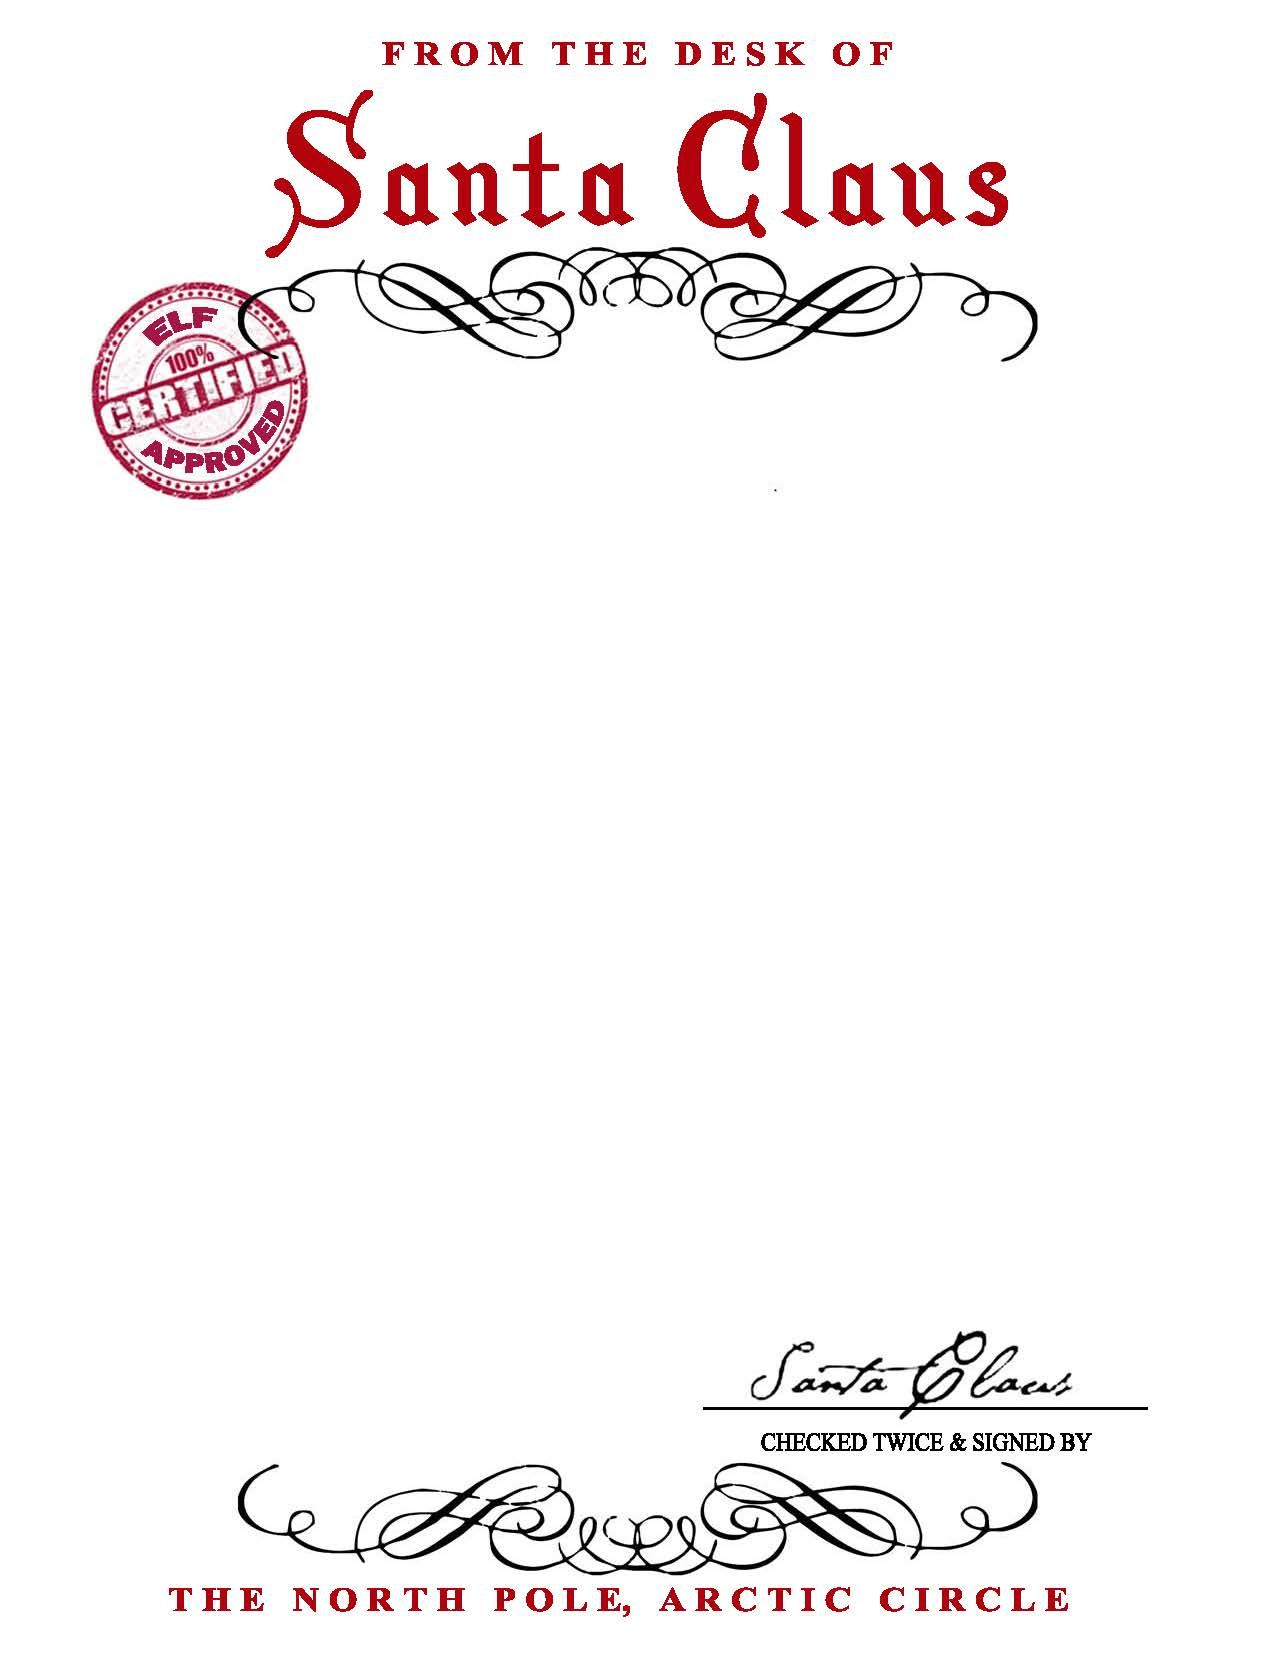 free printable letter from santa word template example-SANTA CLAUS LETTERHEAD Will bring lots of joy to children 12-r